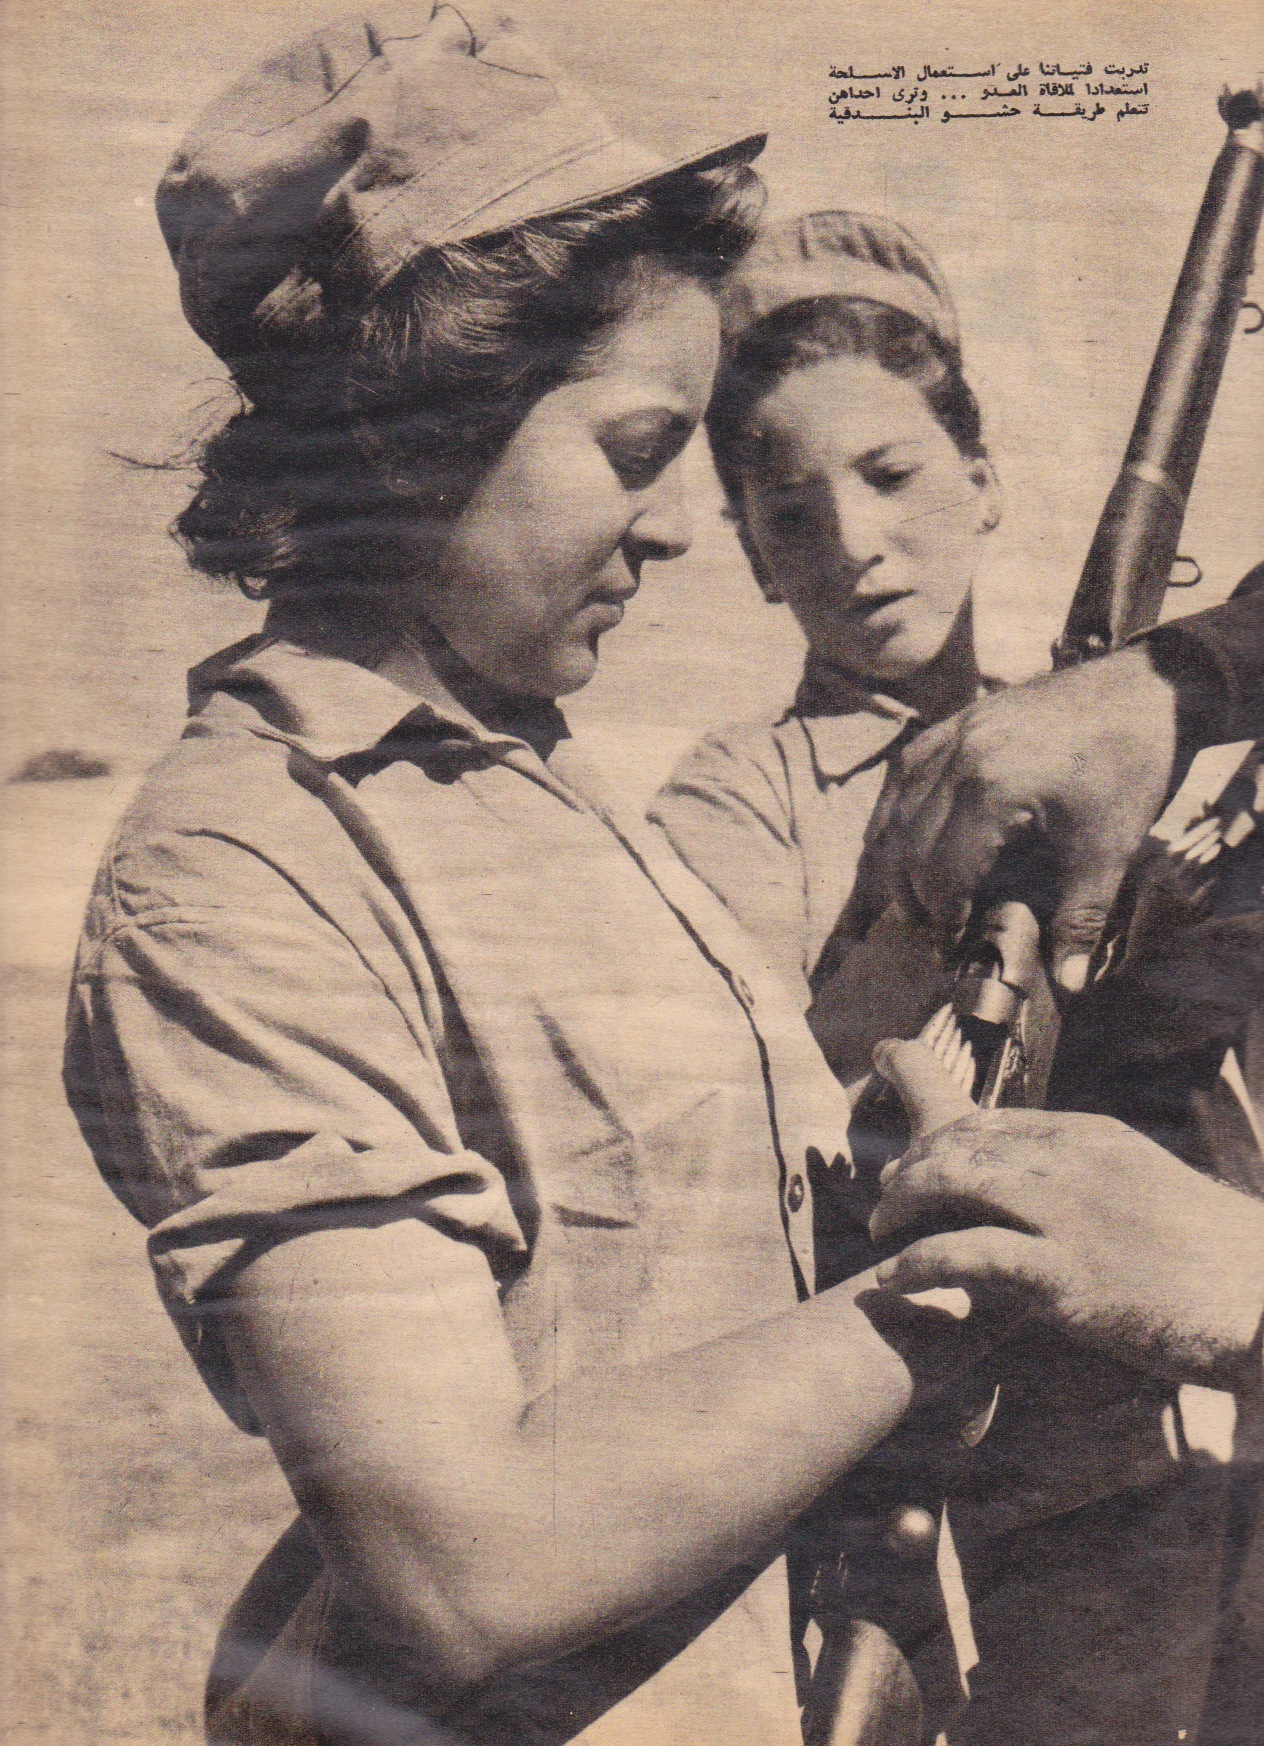 Egyptian women volunteer to bear arms in 1956